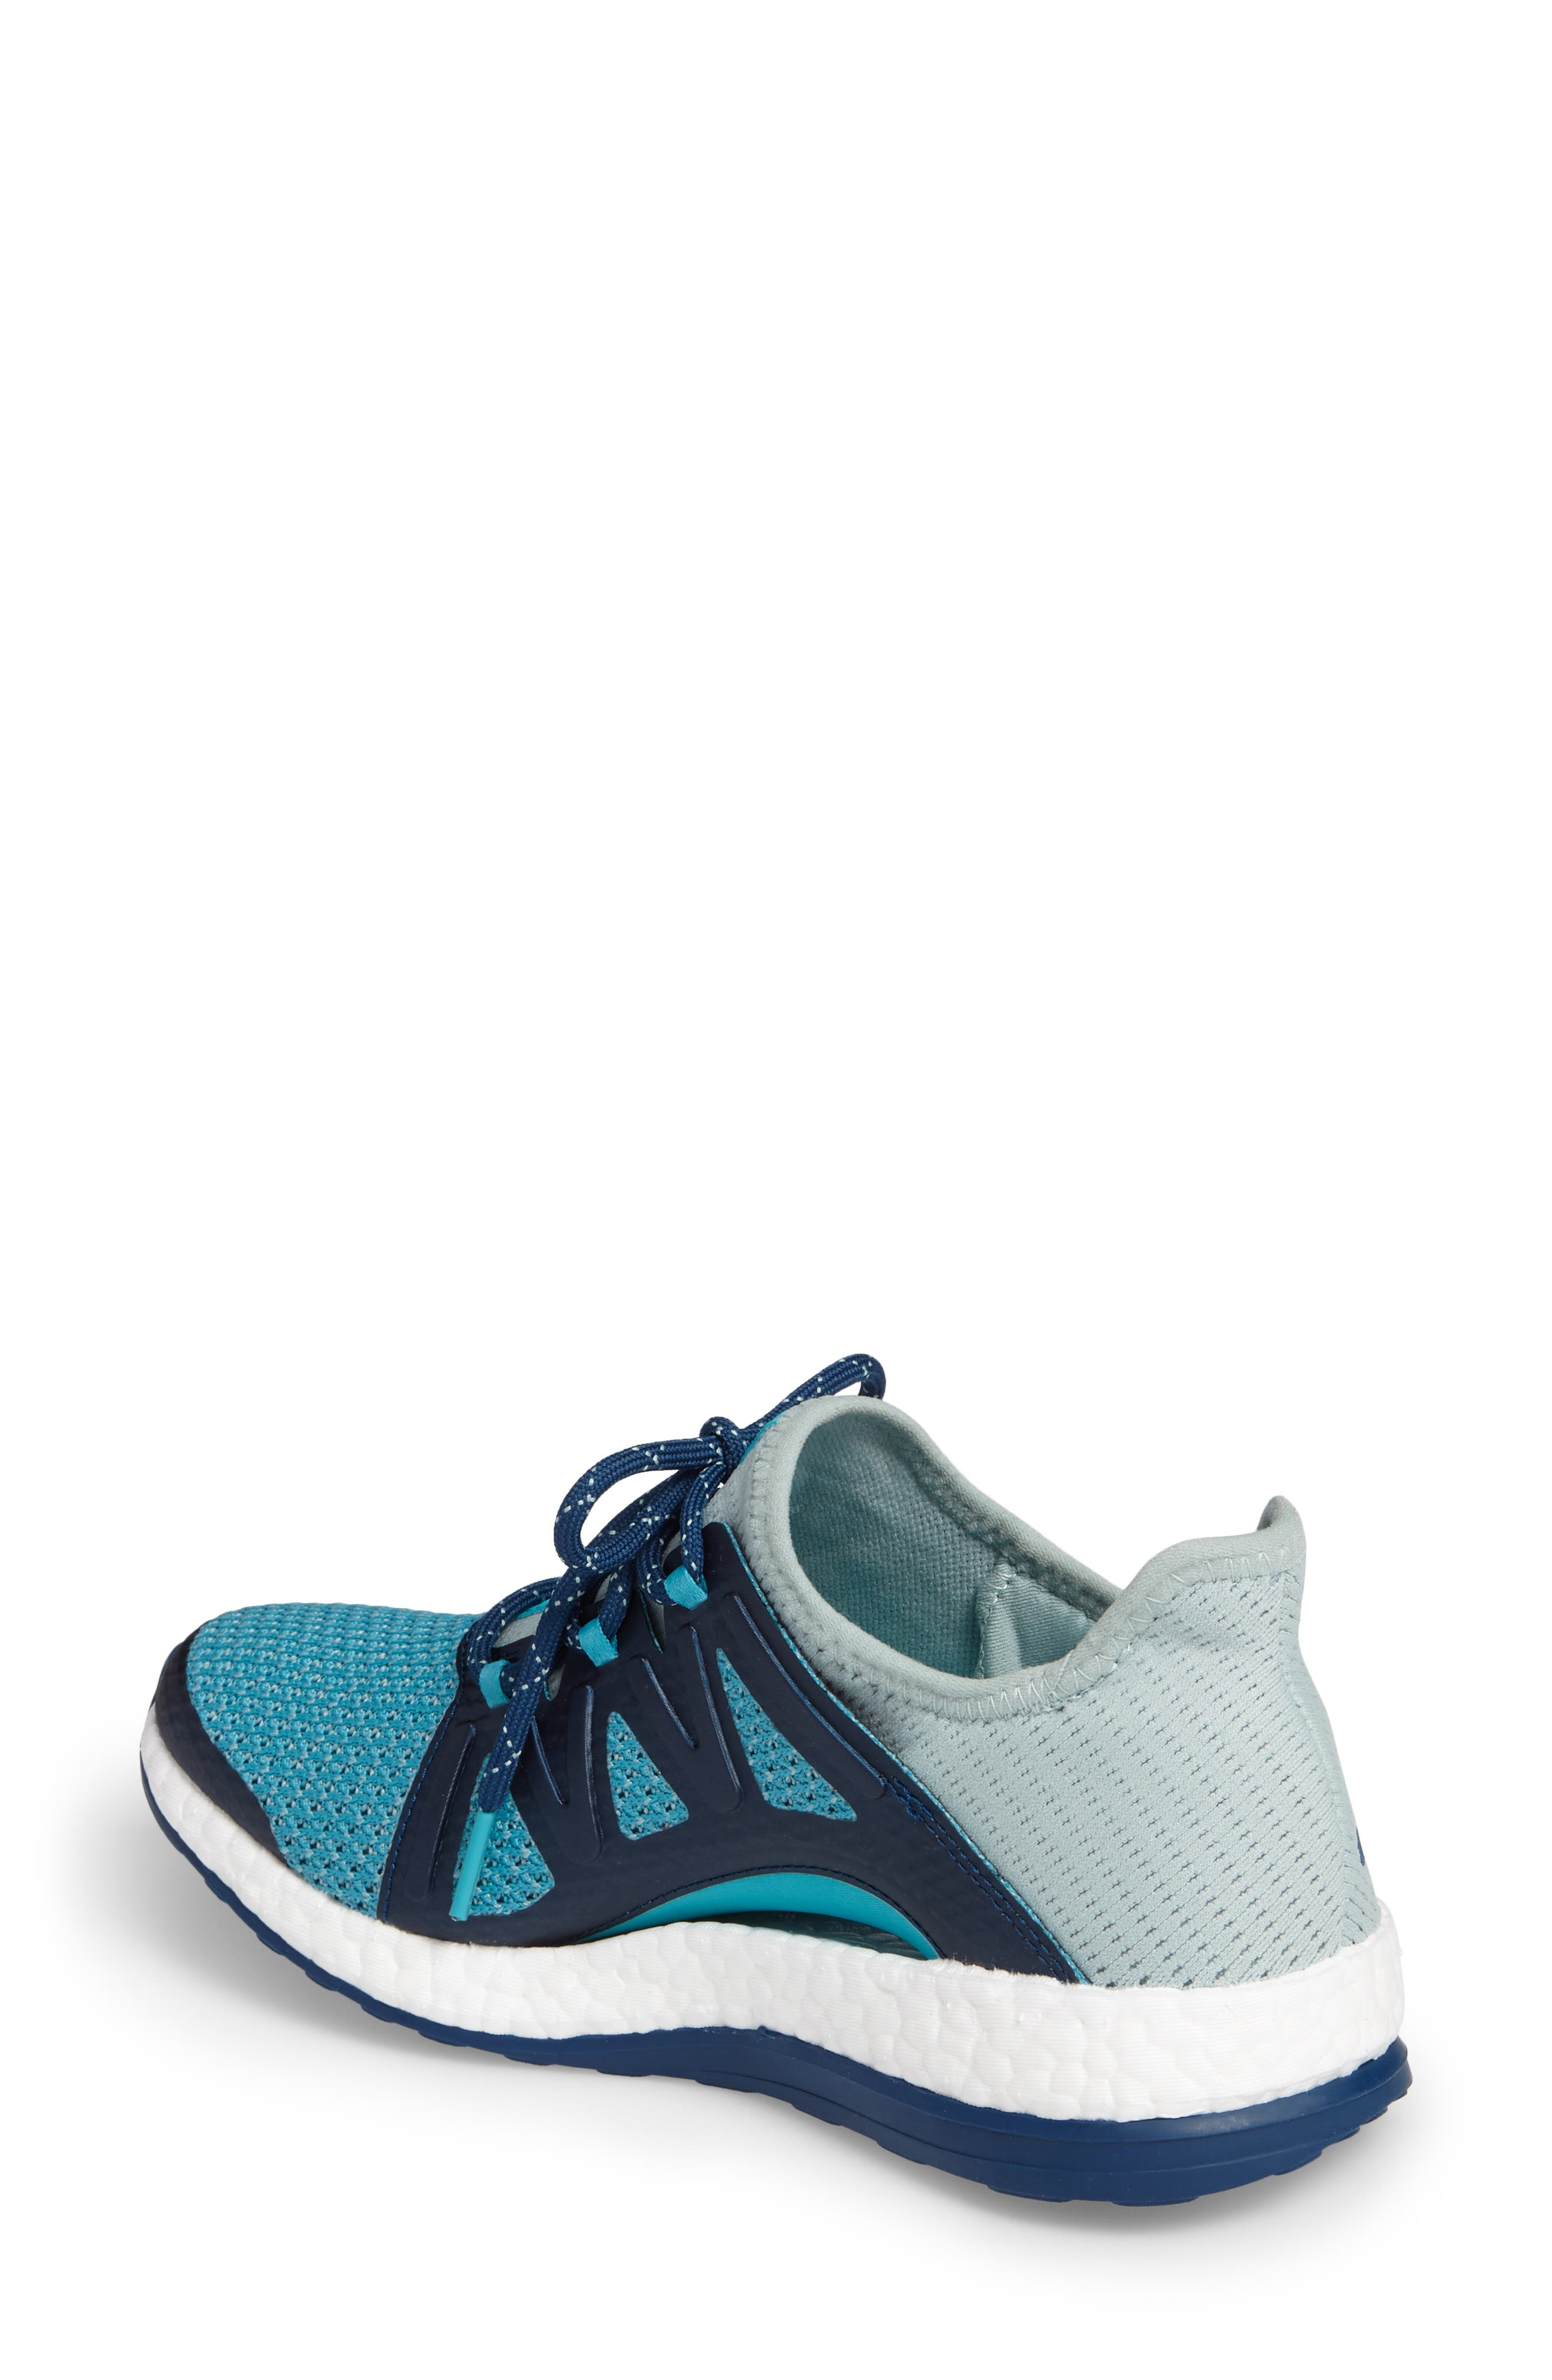 PureBOOST Xpose Running Shoe,                             Alternate thumbnail 8, color,